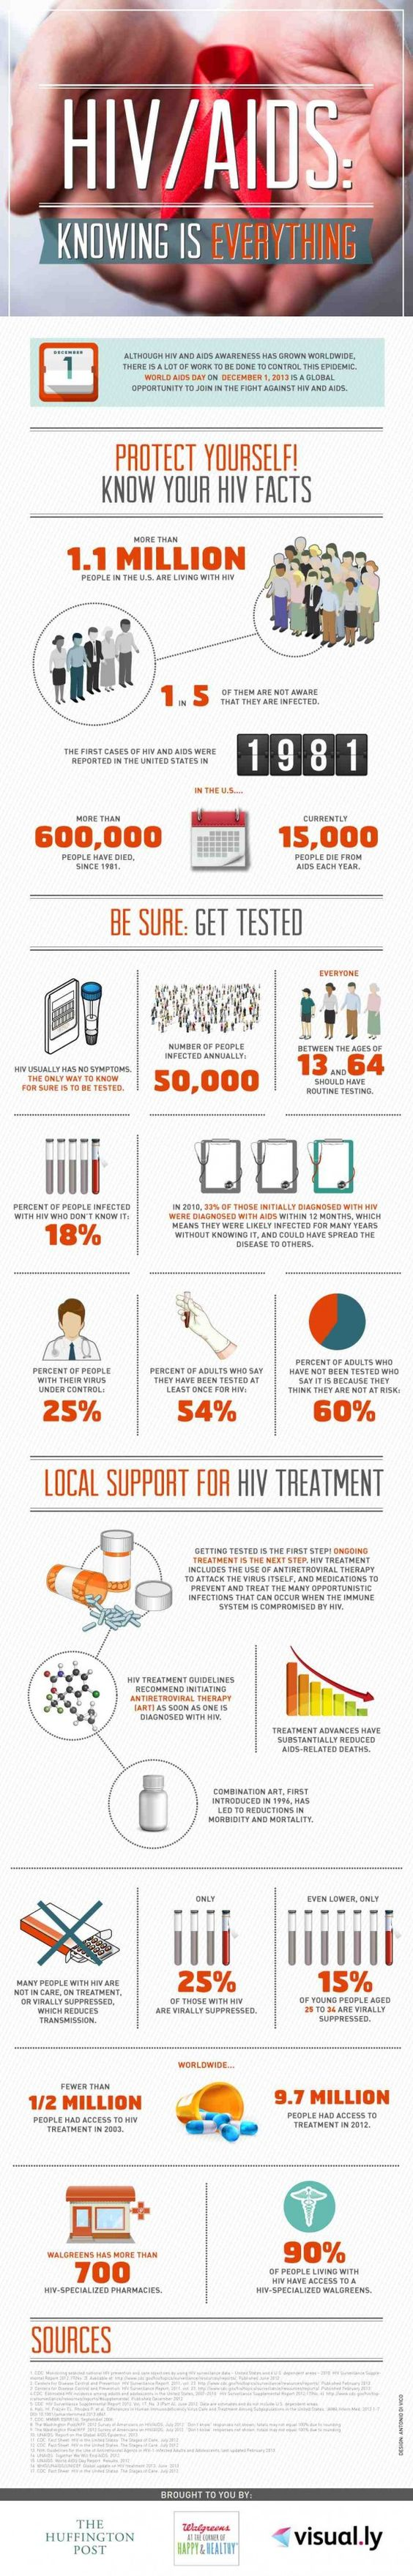 Super interesting infographic about HIV/AIDS in honor of World AIDS Day.